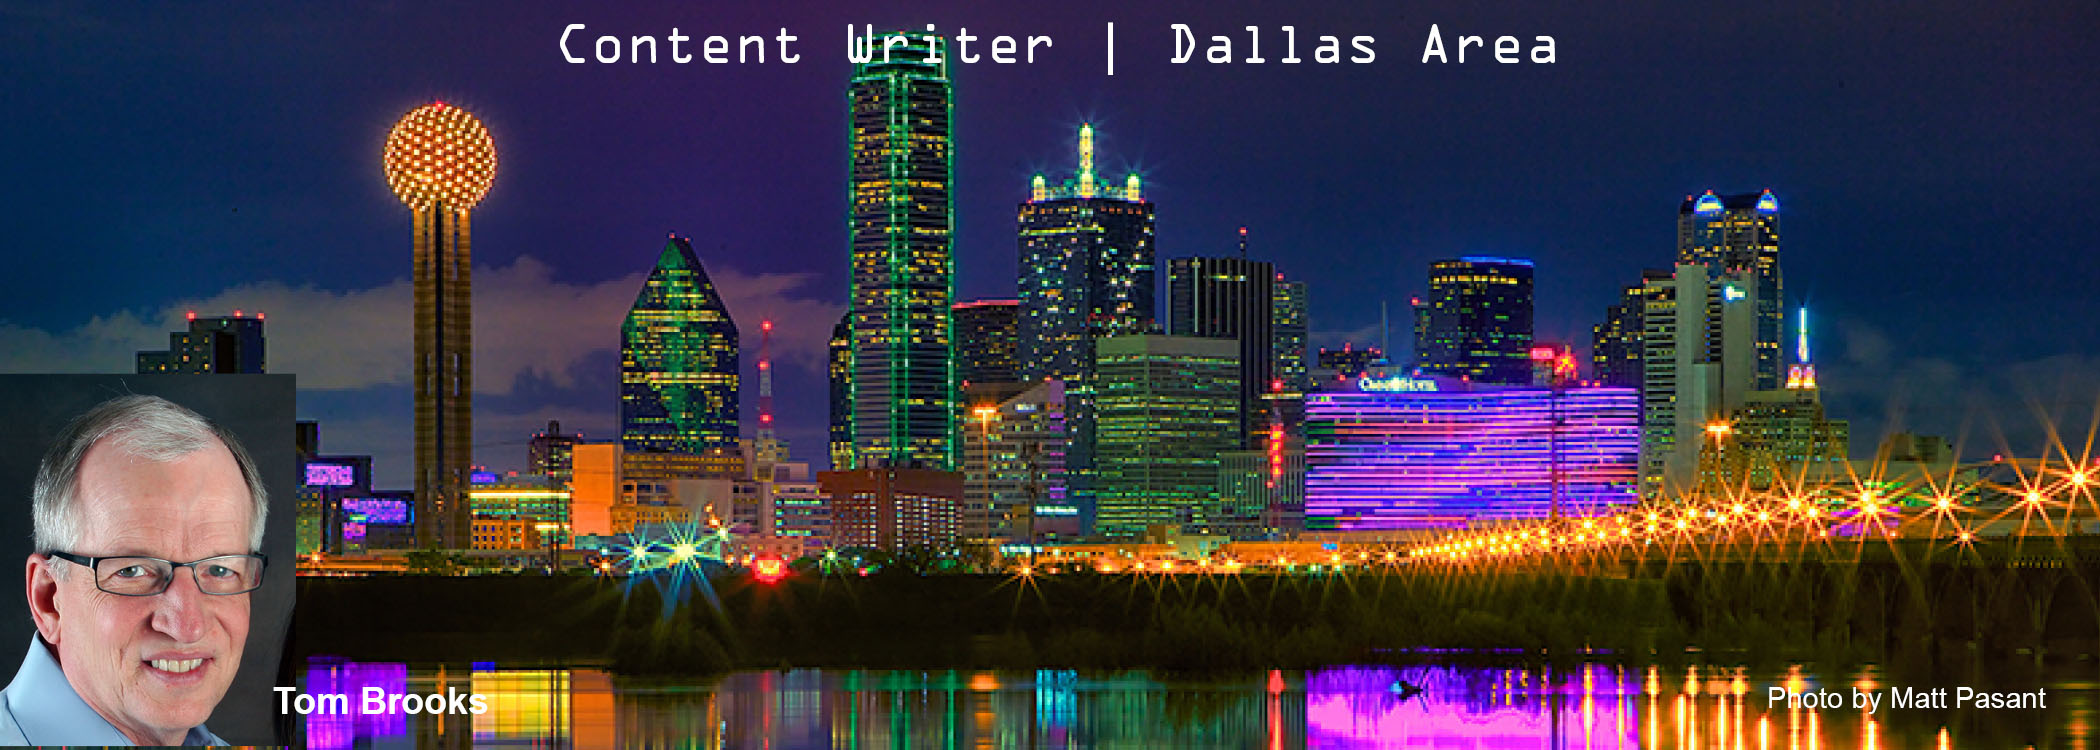 Conten Writer | Copy Writer | Dallas |Tom Brooks